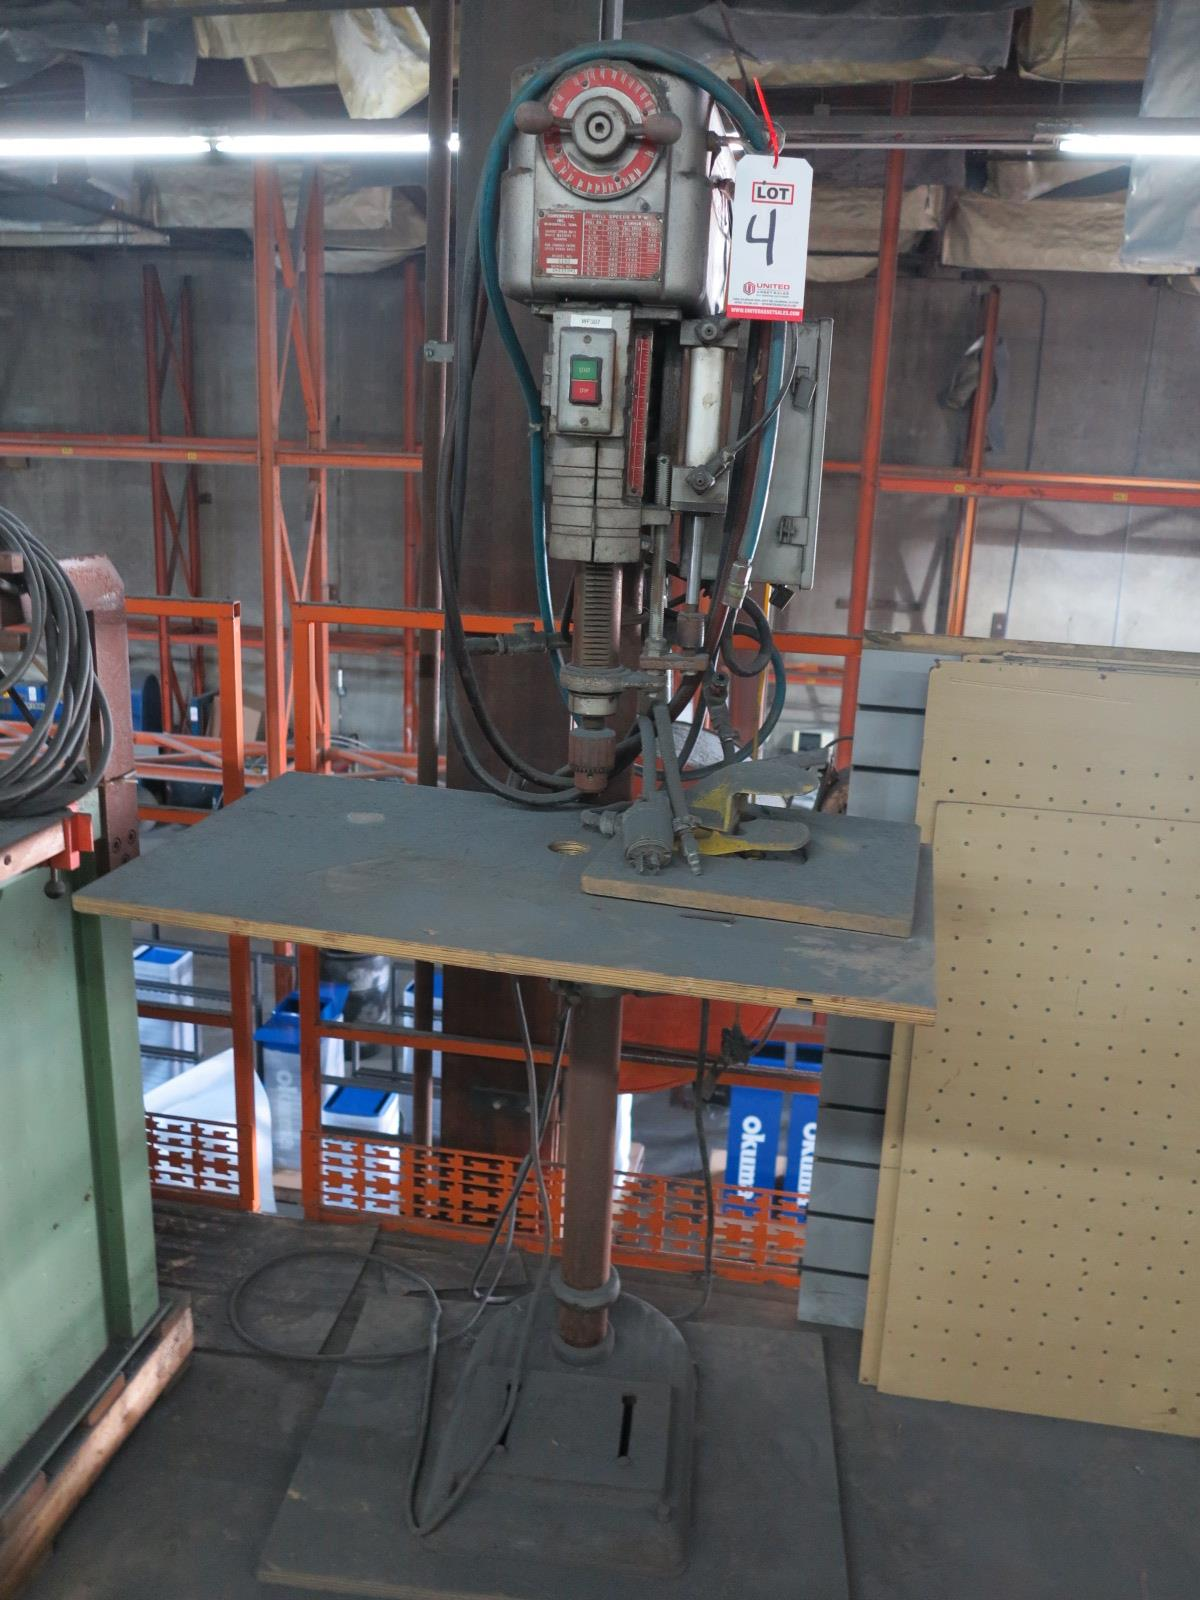 """POWERMATIC MODEL 1150 15"""" DRILL PRESS, VARIABLE SPEED, S/N 4-4359-1, OUT OF SERVICE - Image 2 of 2"""